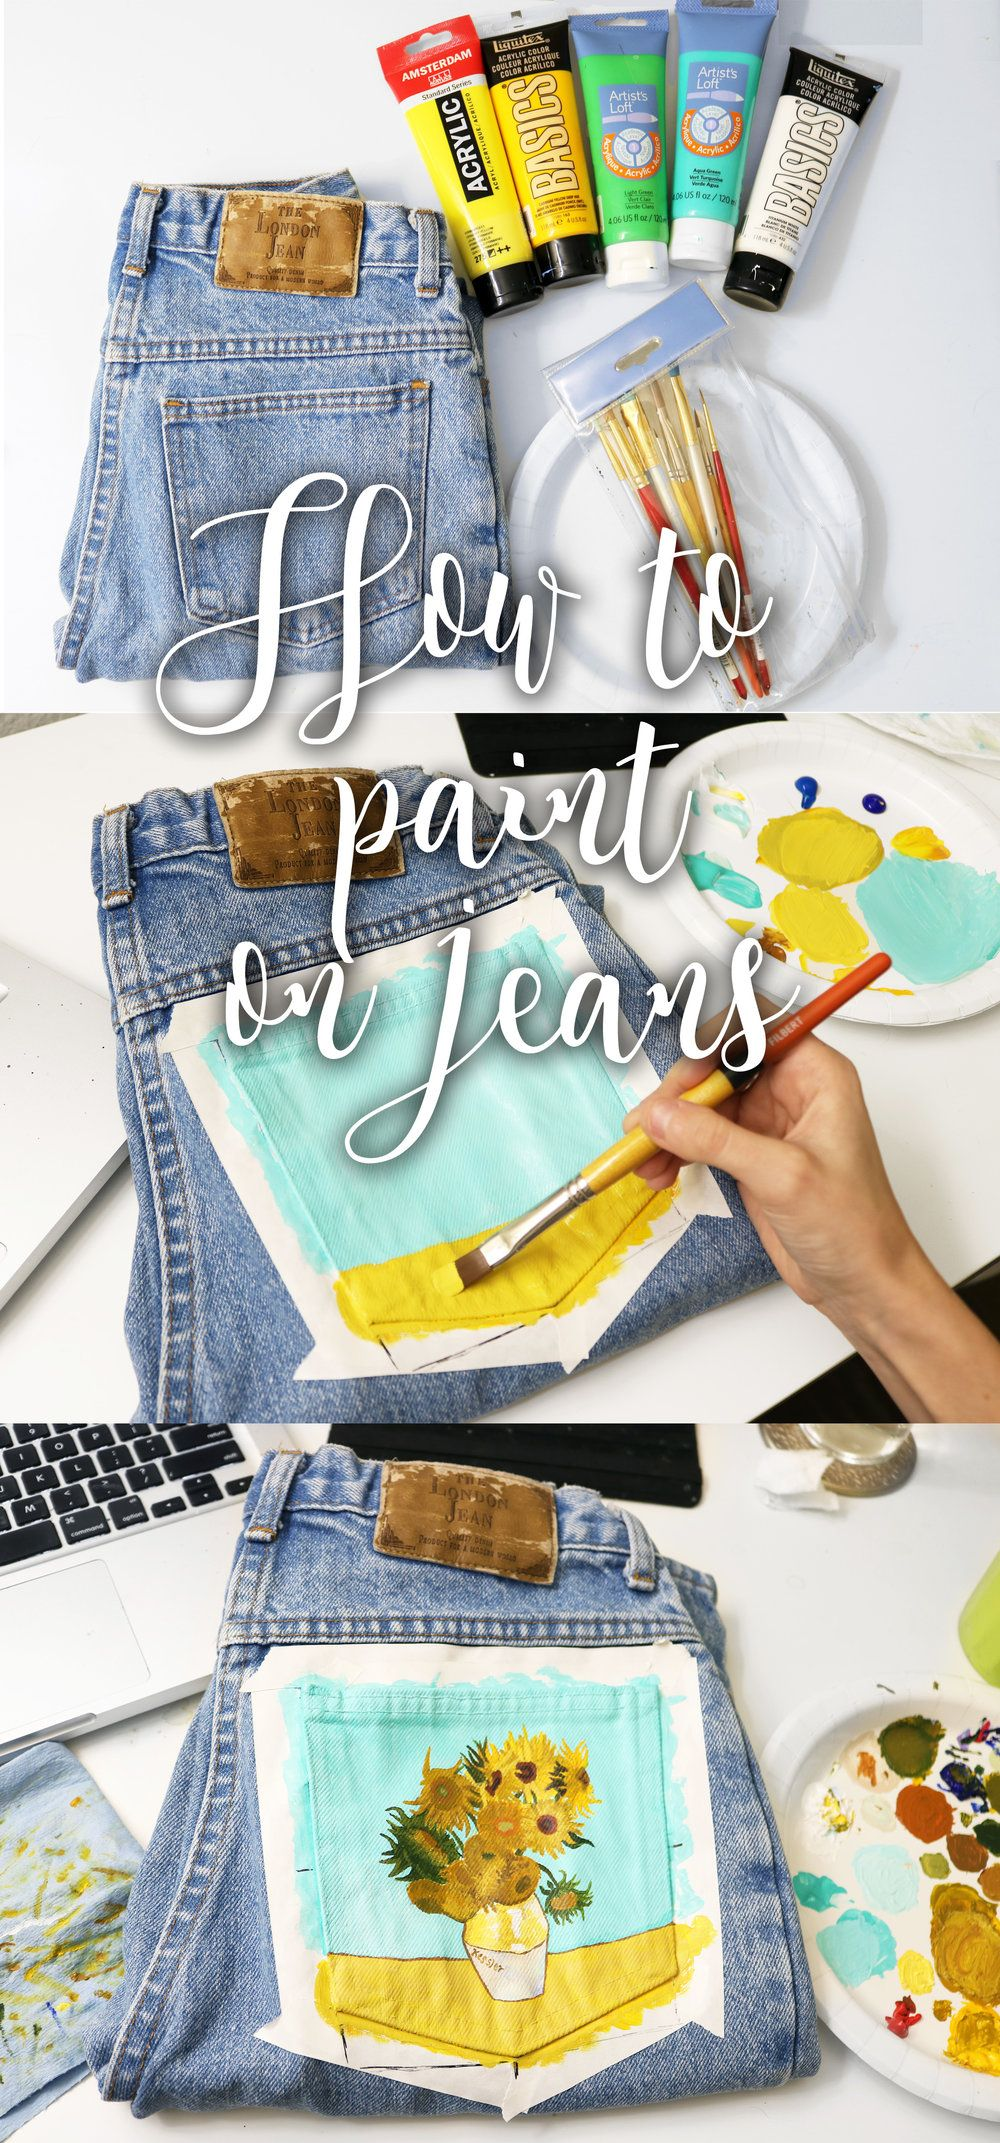 How to paint on jeans 5 steps with pictures painted